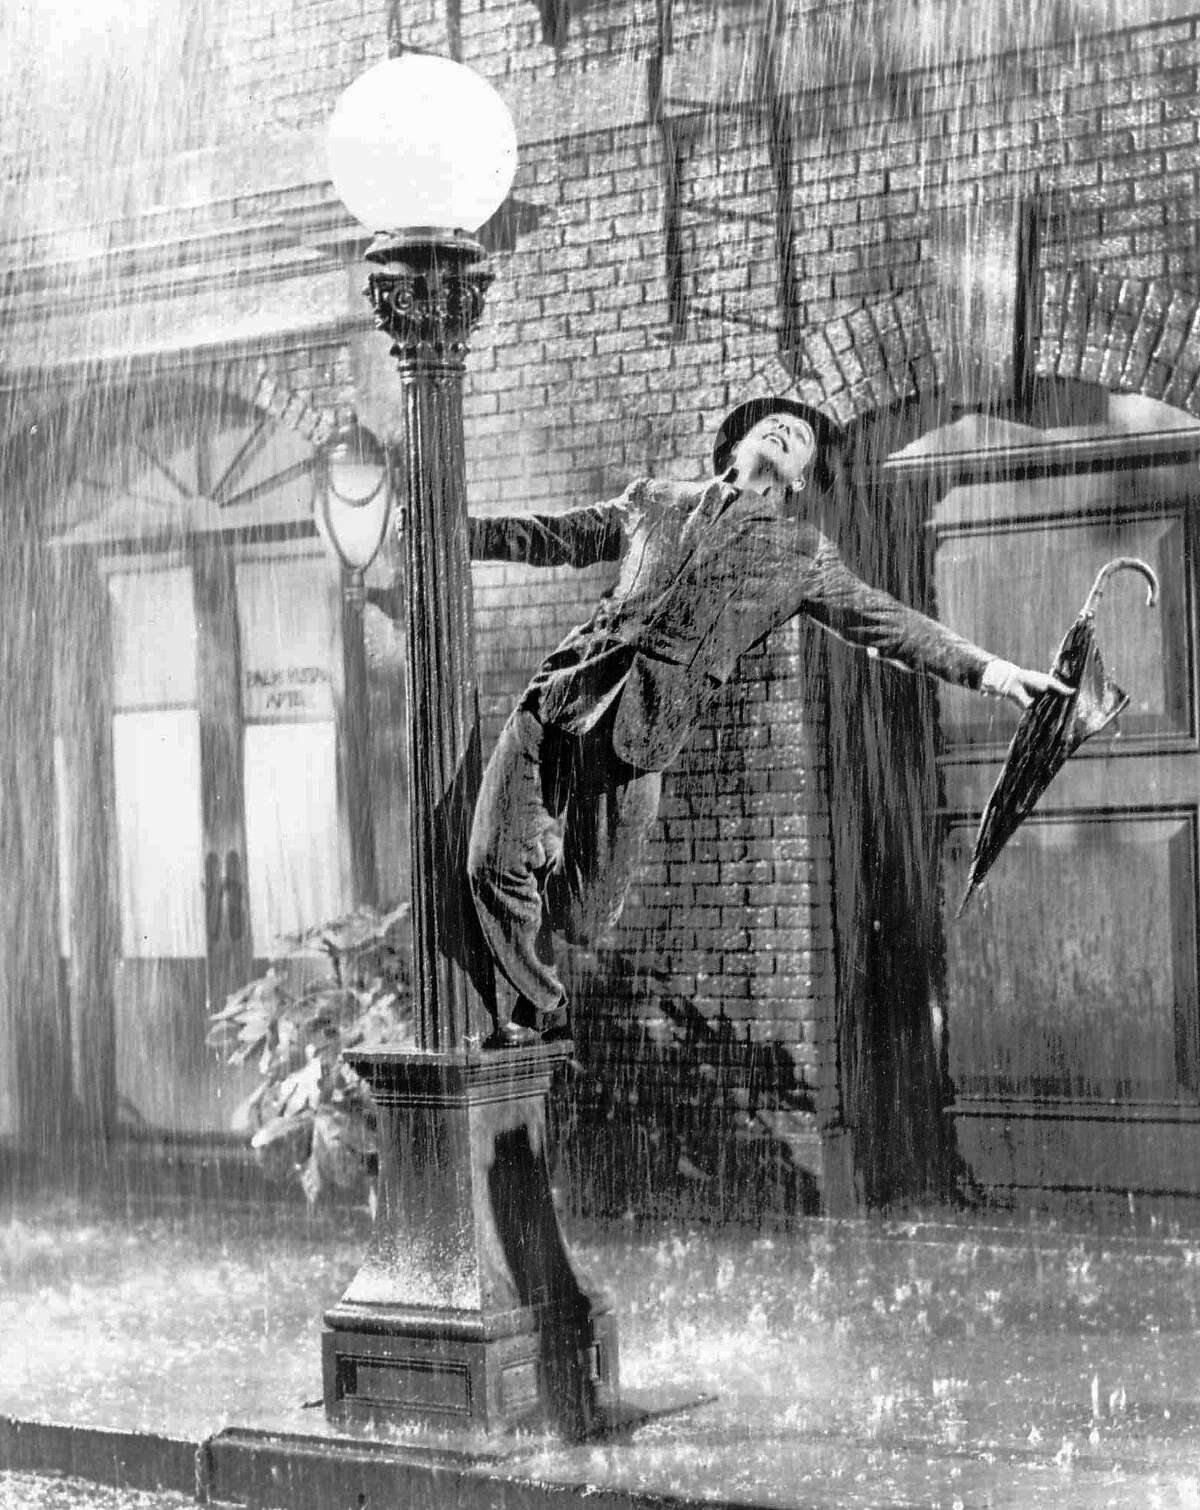 FILE - Gene Kelly performs in the 1952 film ``Singin' in the Rain''. Kelly, a dancer and choreographer who brought his athletic grace and Irish charm to ``Singin' in the Rain and other great movie musicals of the 1940s and '50s, died Friday, Feb. 2, 1996 at his Beverly Hills home his publicist said. Kelly's most memorable dance was the title number of ``Singin' in the Rain,'' in which he splashed joyously through puddles on a near-deserted street, his love for Debbie Reynolds rendering him oblivious to the wet. (AP Photo, files)